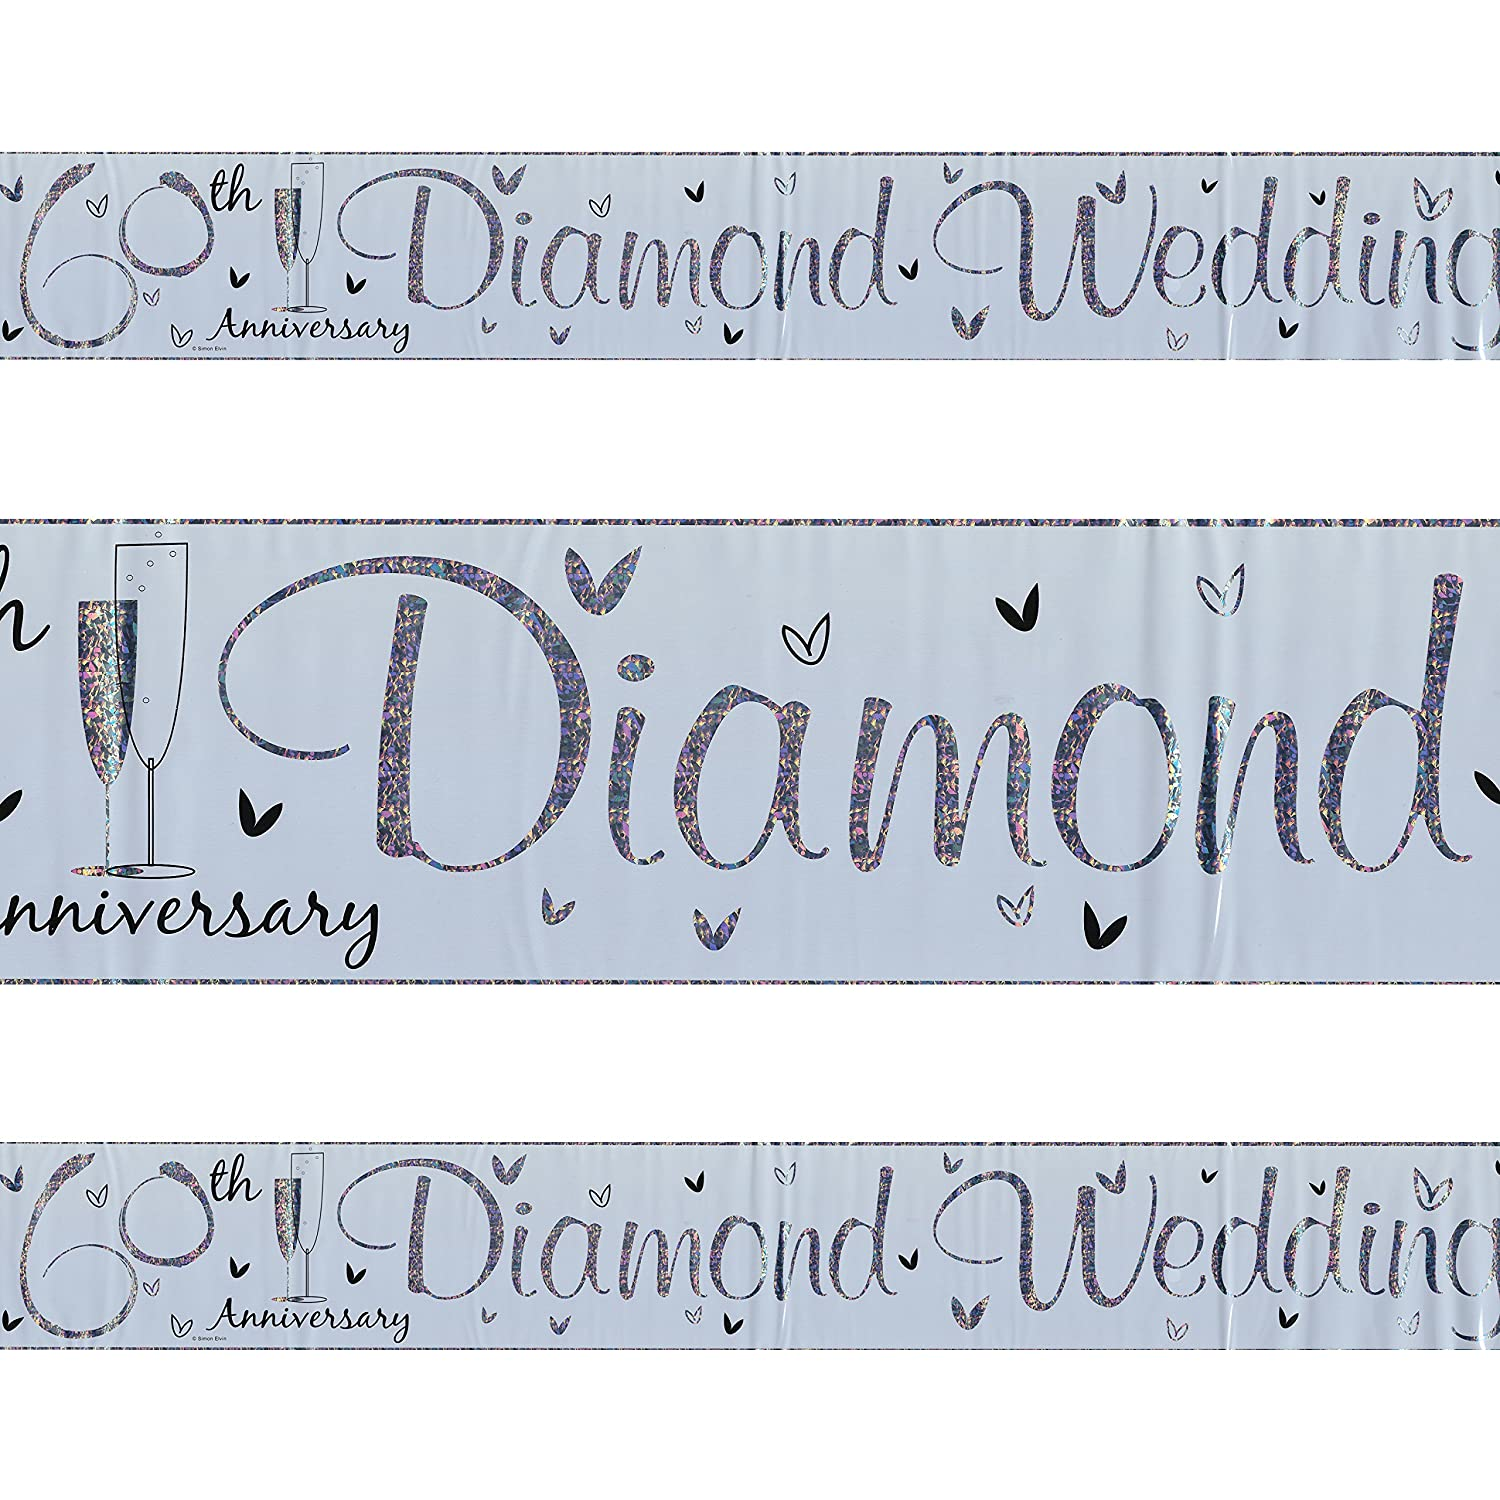 60th Diamond Wedding Anniversary Plastic Silver Holographic Banner 2.5m Oxford Novelties